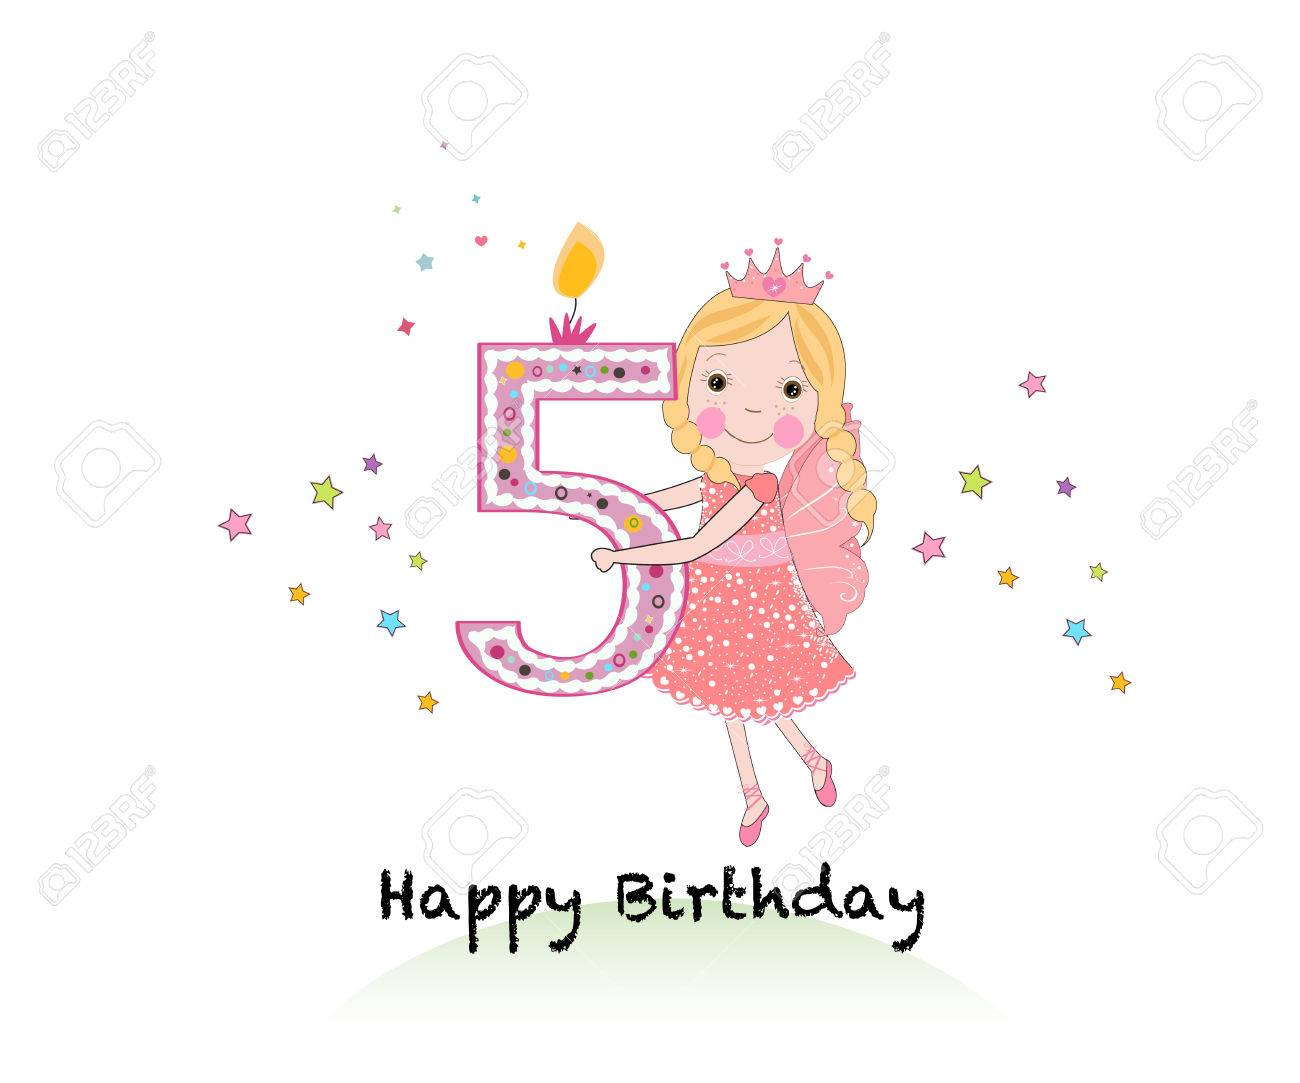 Happy Fifth Birthday Candle Girl Greeting Card With Cute Fairy Royalty Free Cliparts Vectors And Stock Illustration Image 71989926